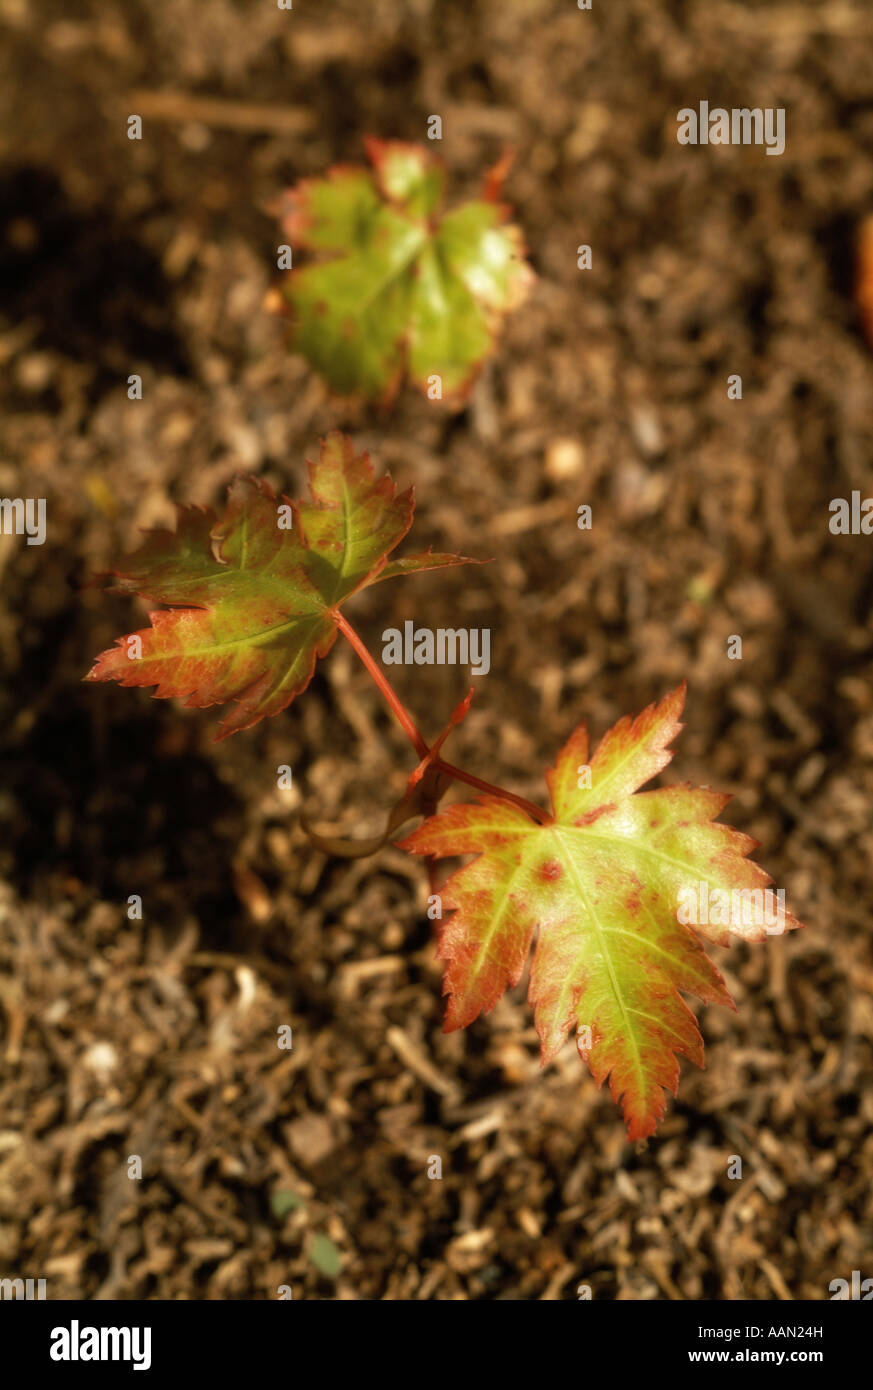 Close up of a young Parthenocissus plant leaves - Stock Image